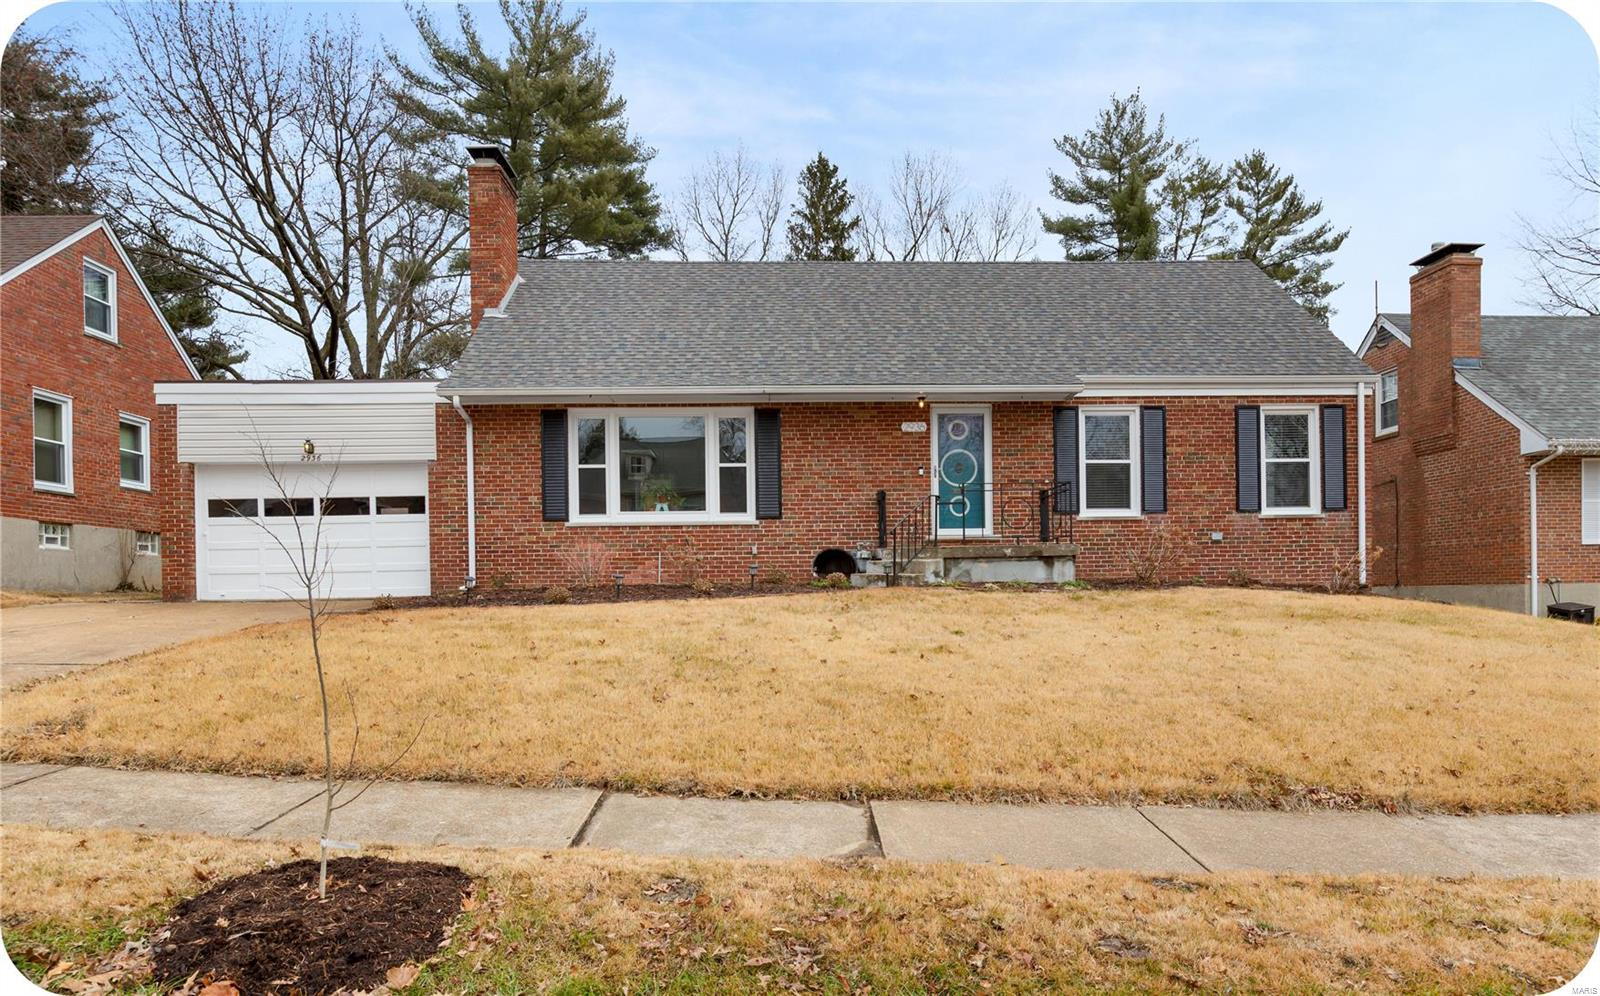 2936 Delavan Property Photo - St Louis, MO real estate listing